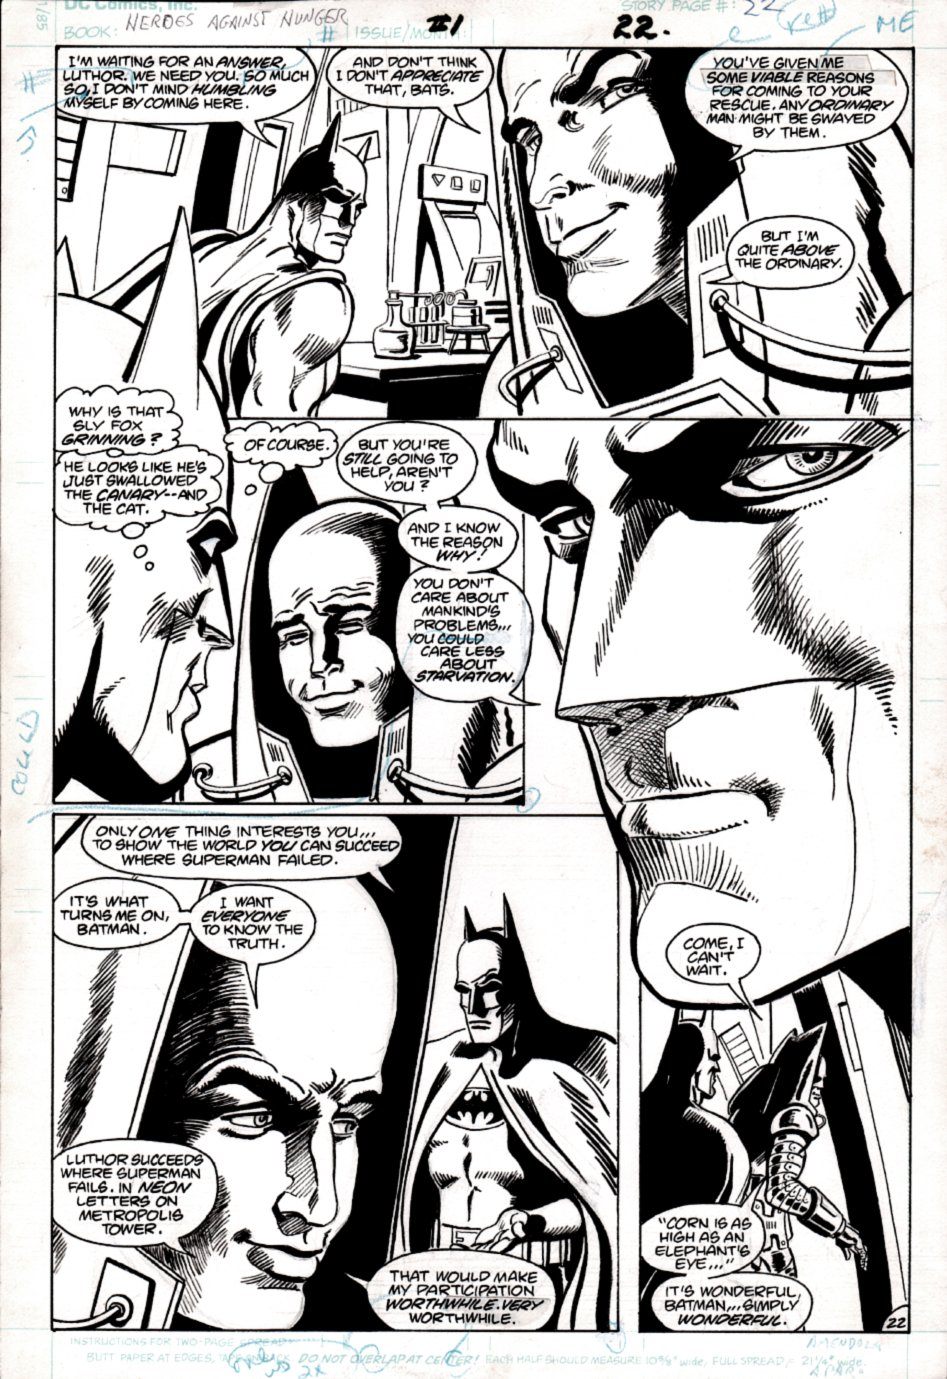 Heroes Against Hunger #1 p 22 ( BATMAN & LEX LUTHOR IN EVERY PANEL! JIM APARO INKS) 1986